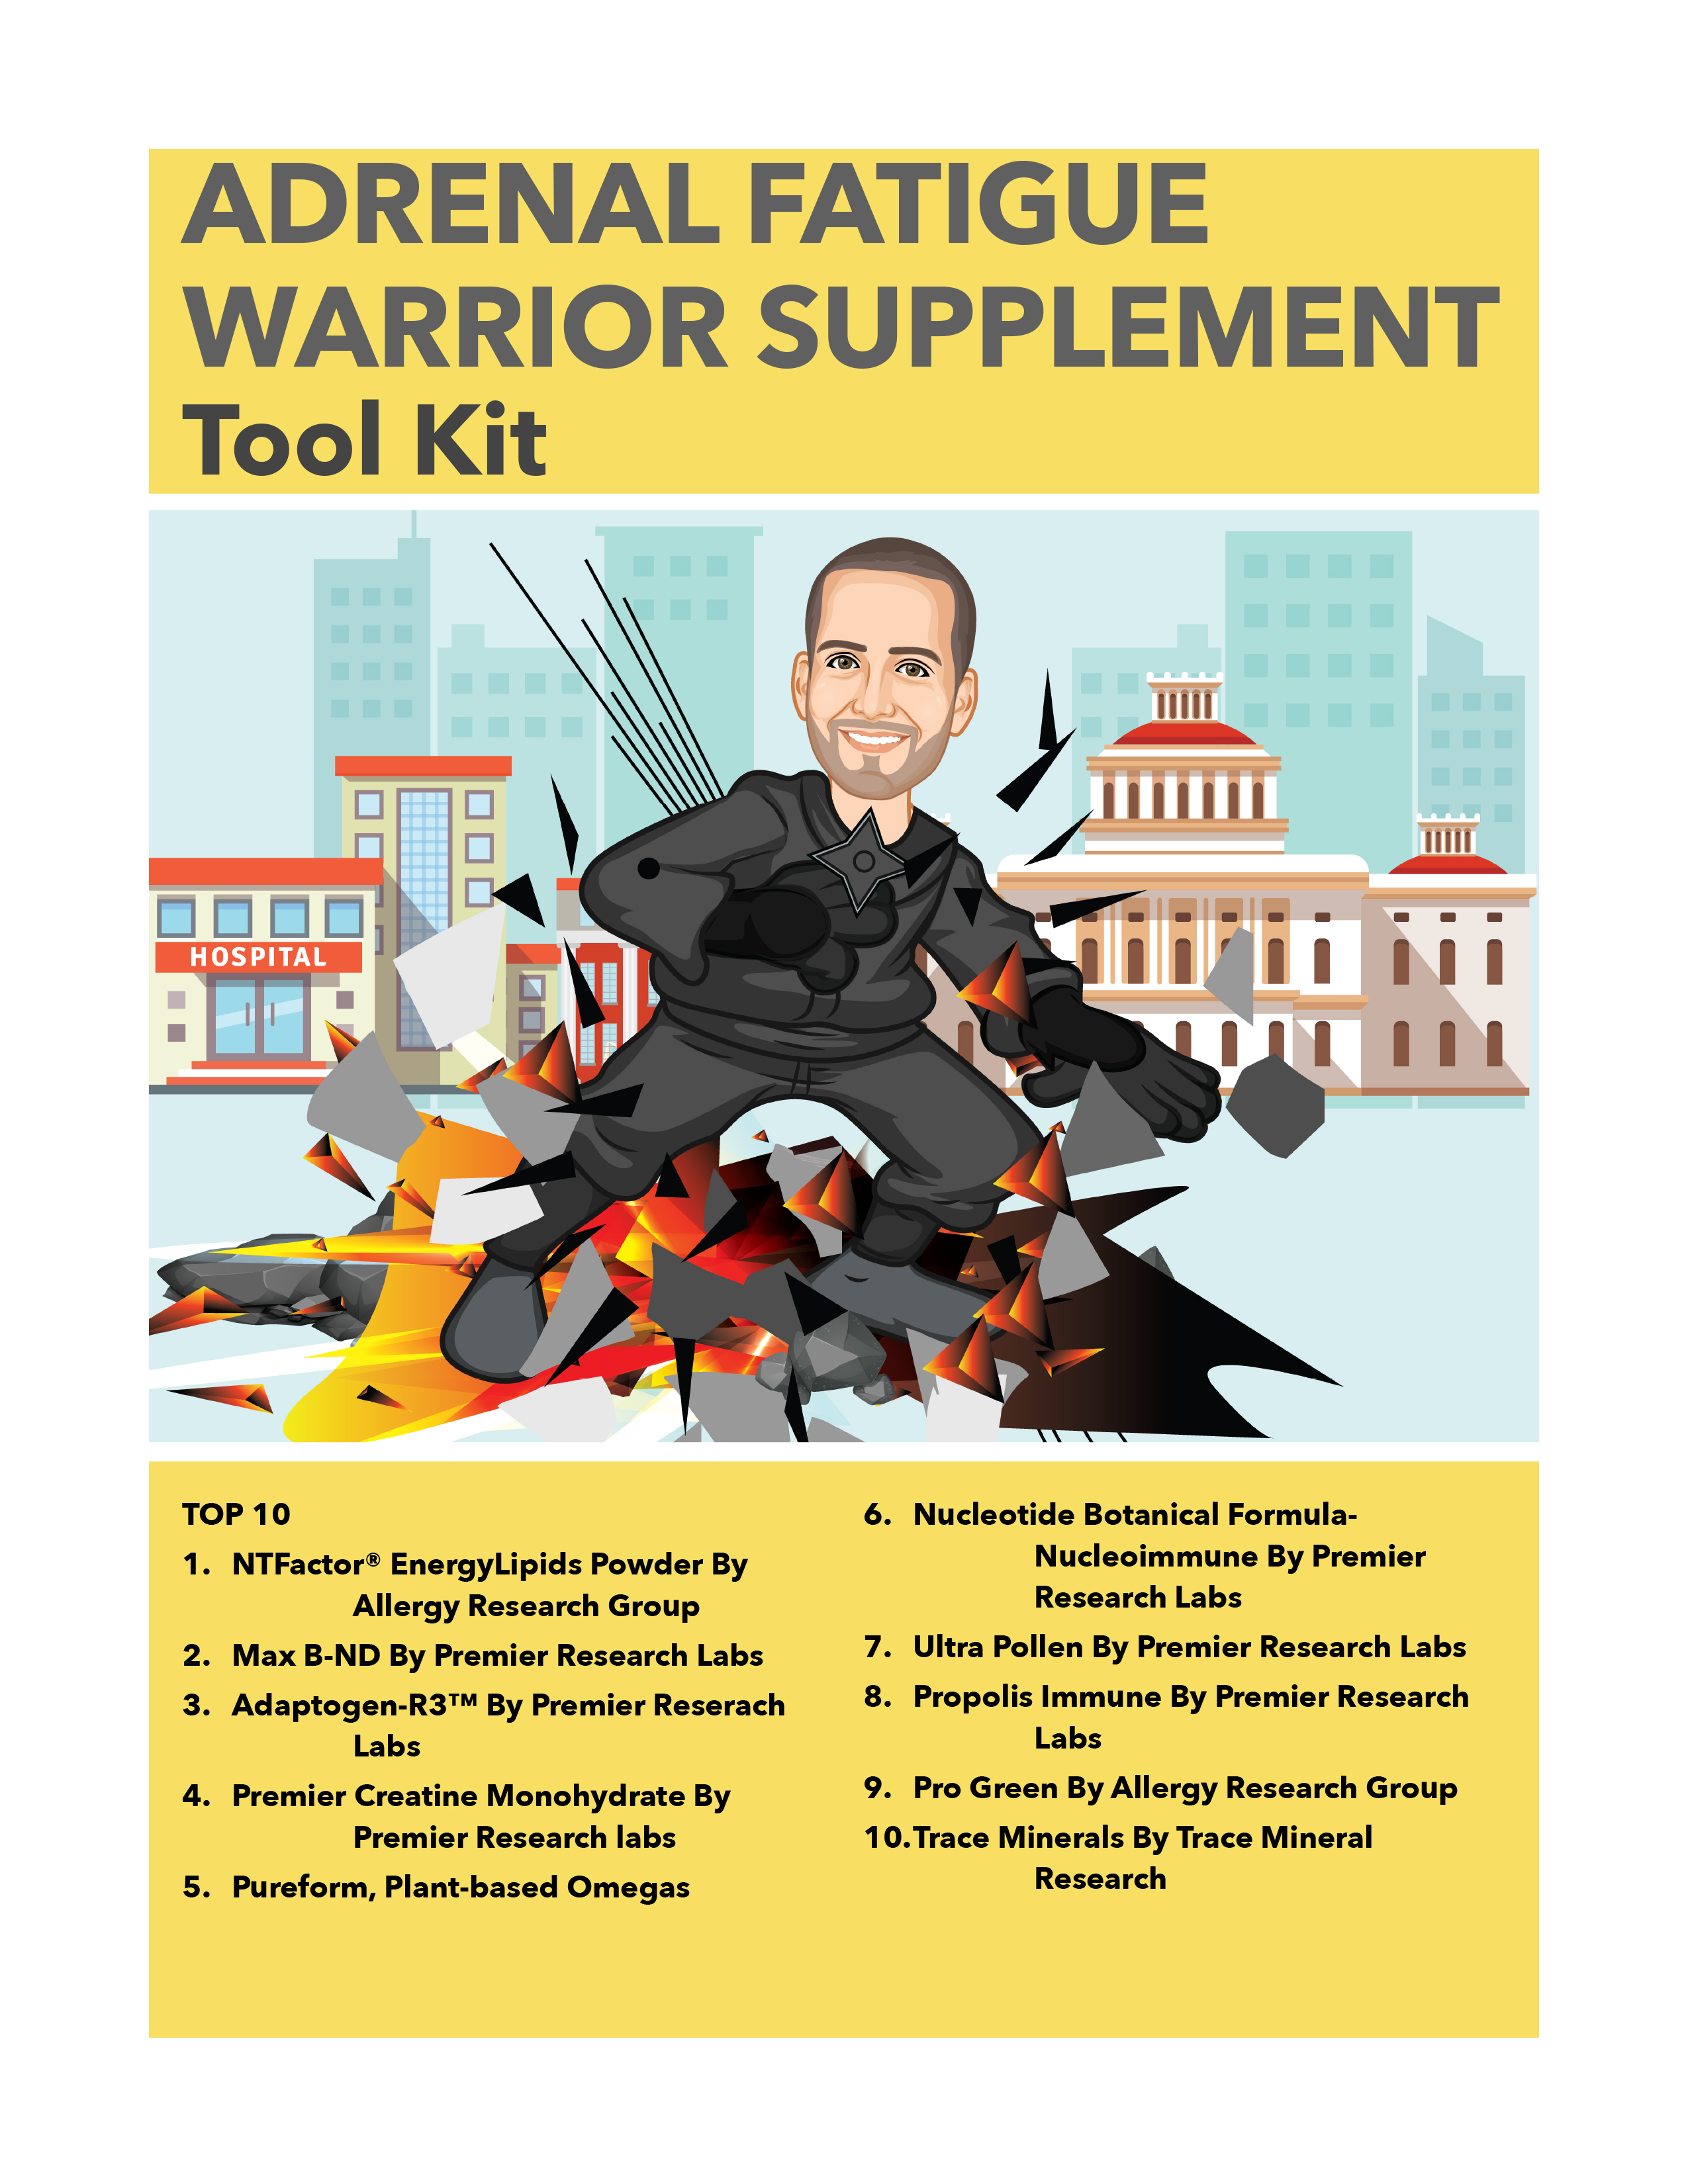 WARRIOR SUPPLEMENT TOOL KIT PDF